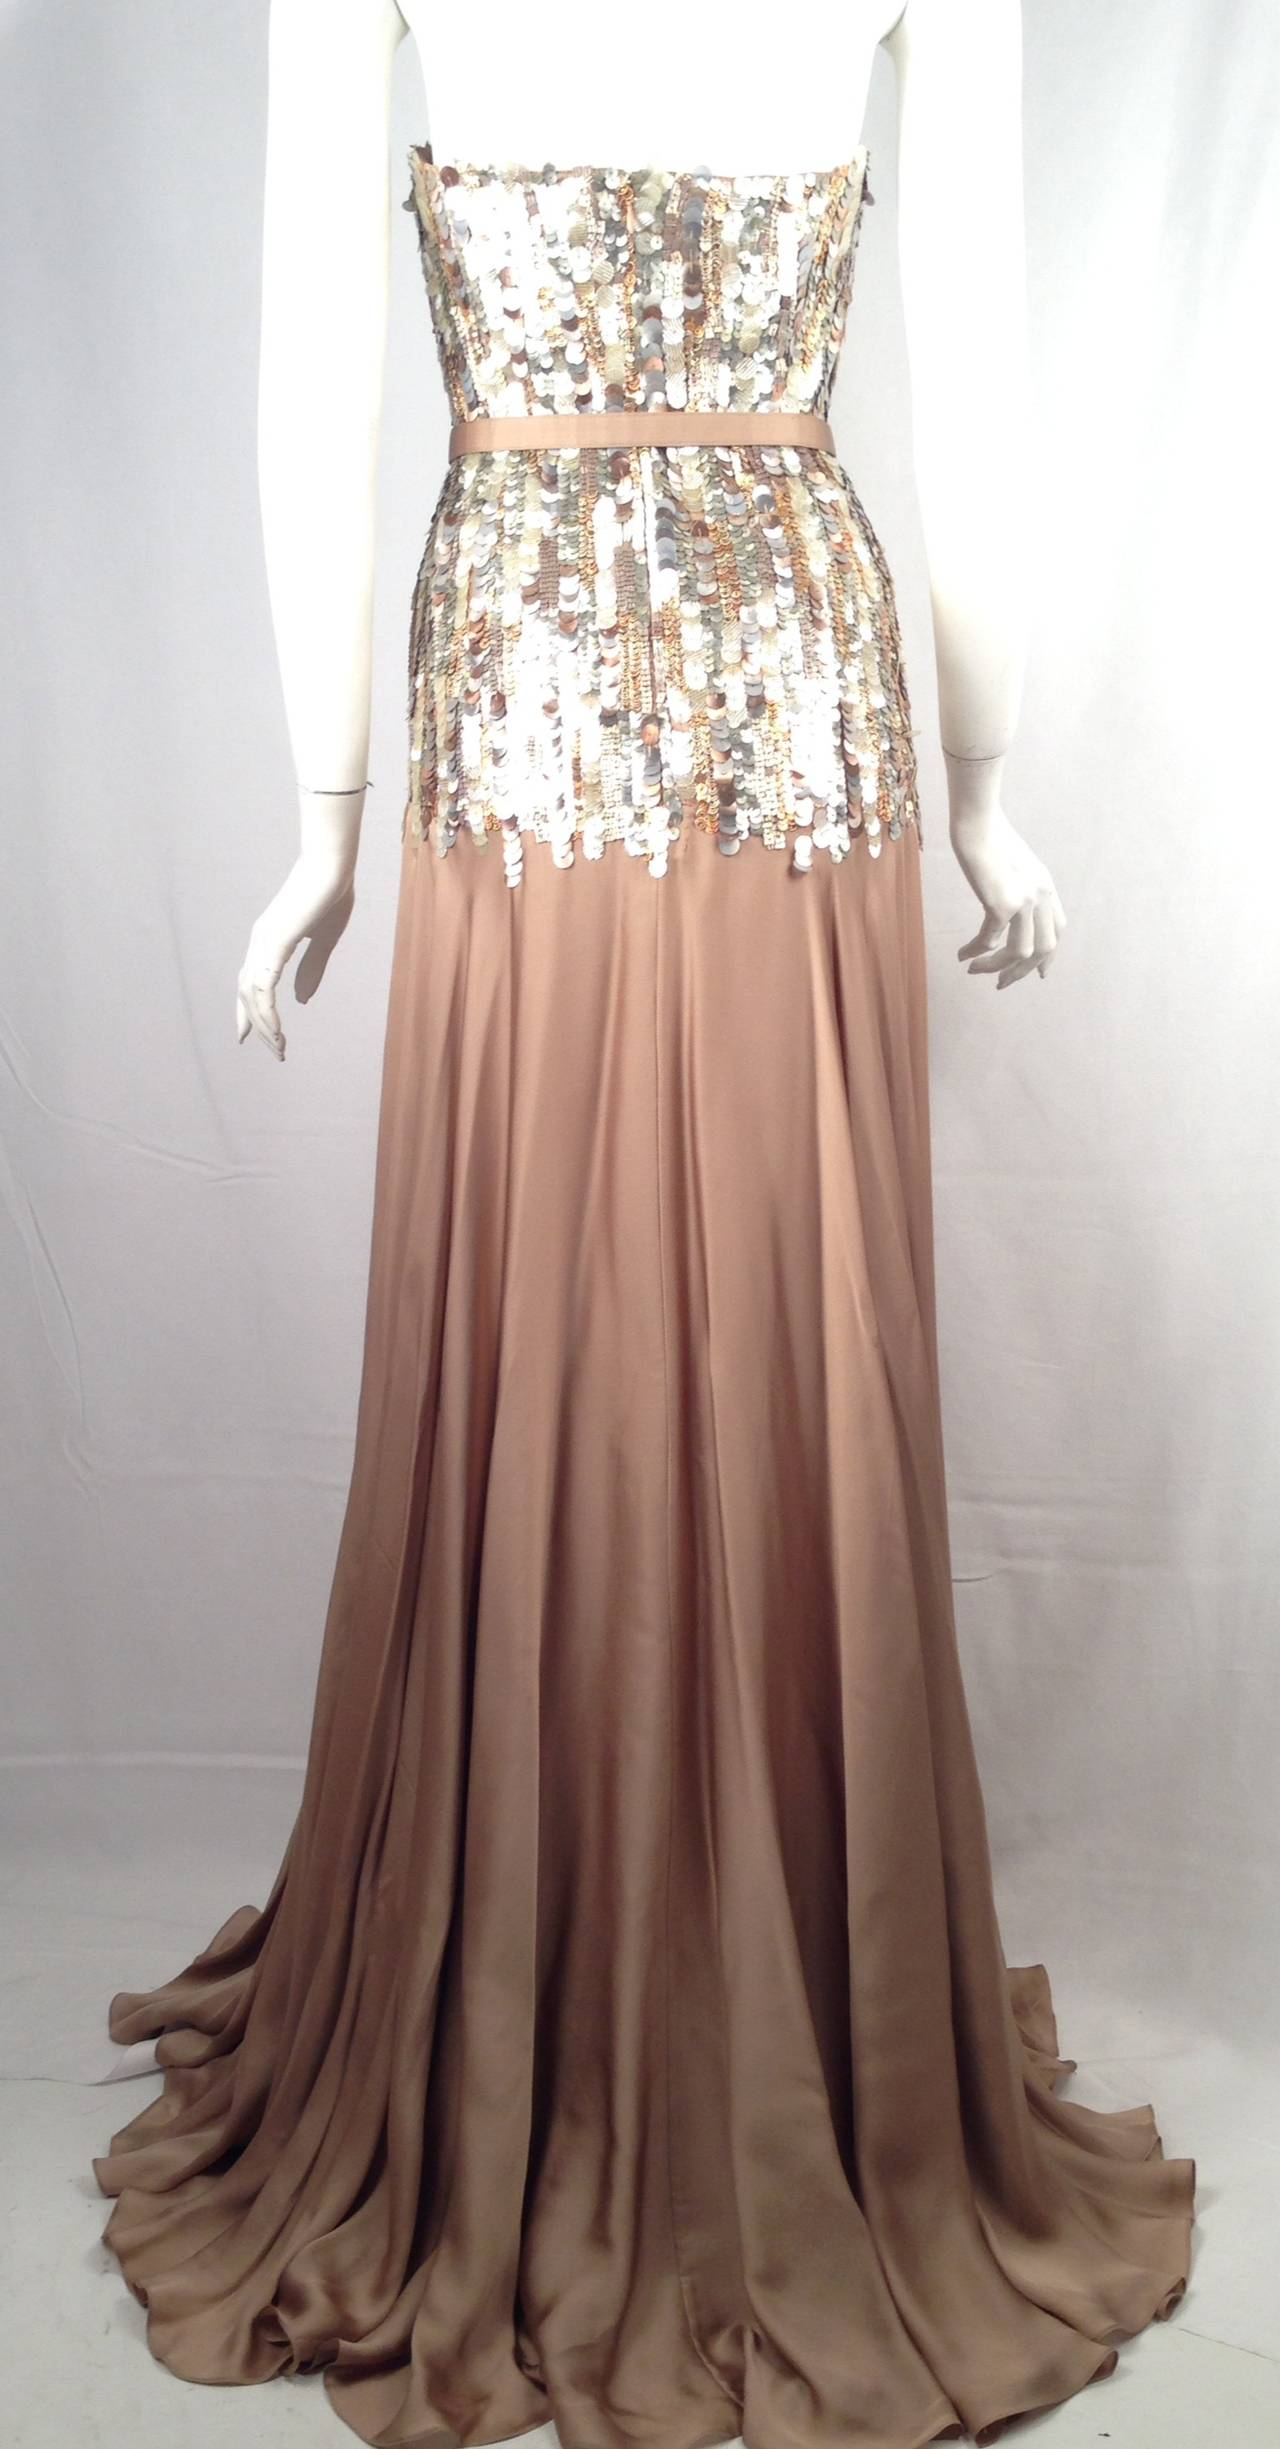 Brand New Strapless Farah Angsana Silk Gown With Sequin and Paillette Bodice 2